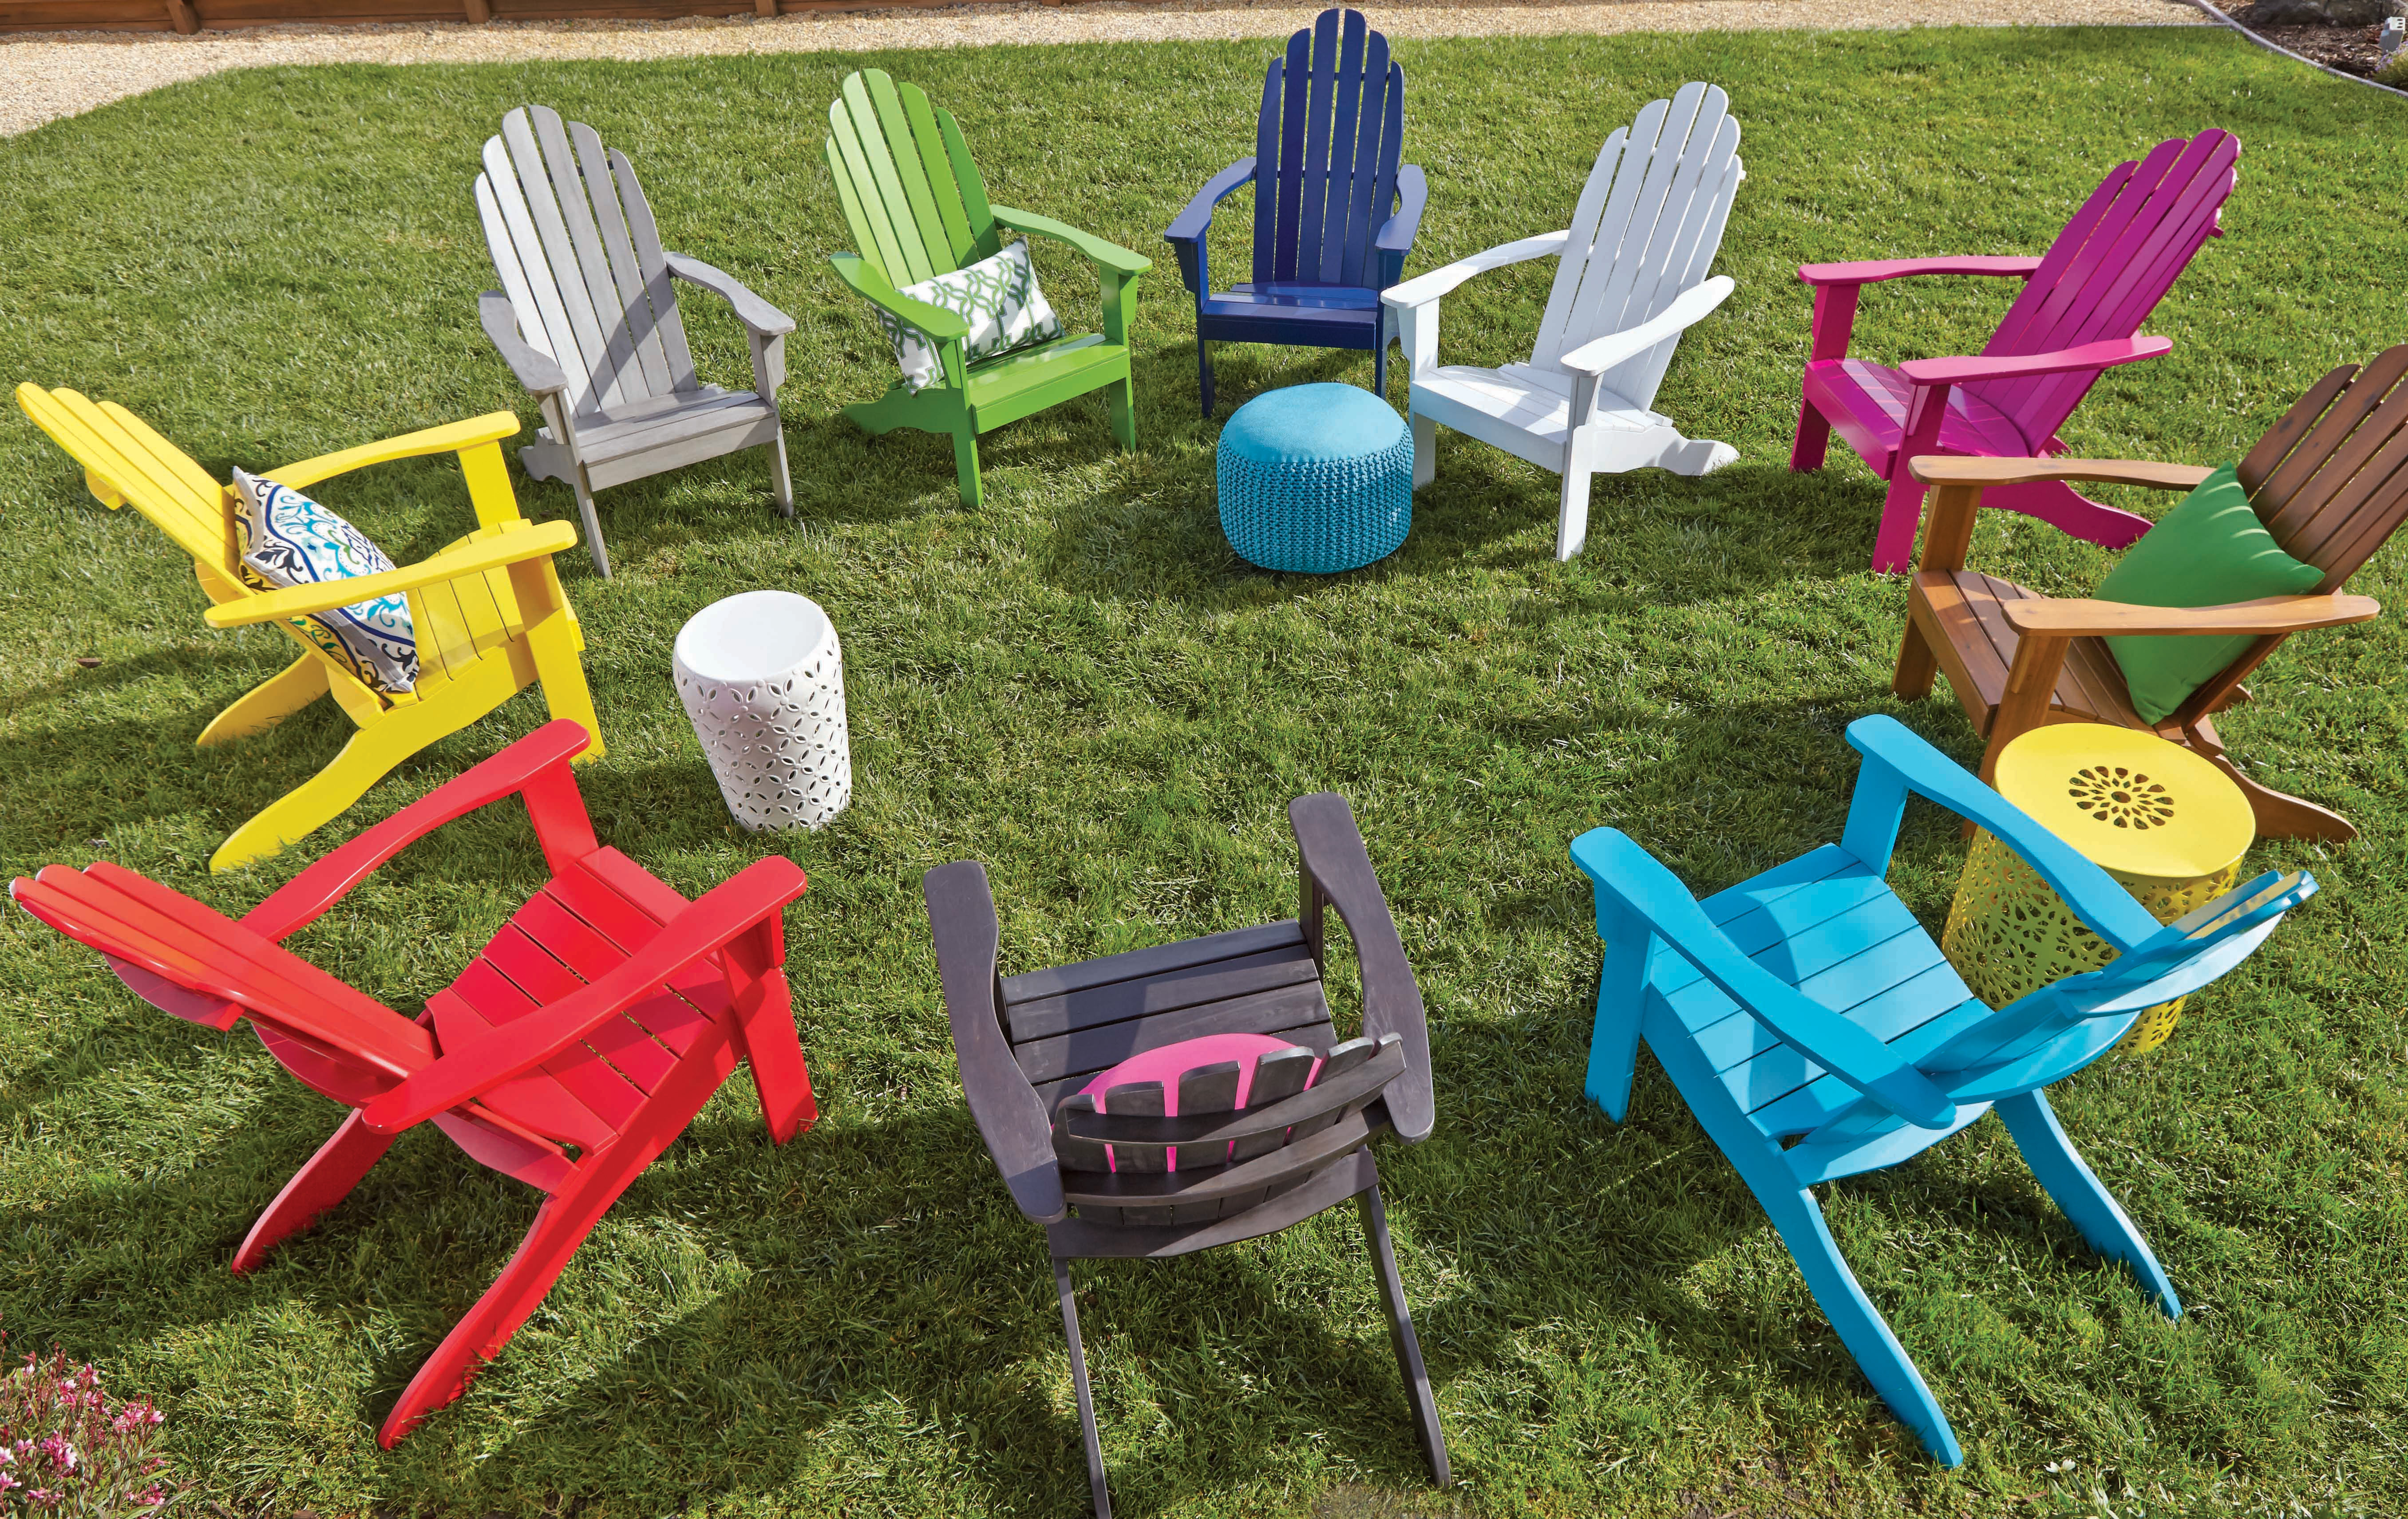 Cost Plus World Market Makes Outdoor Entertaining Easy And Affordable |  Business Wire